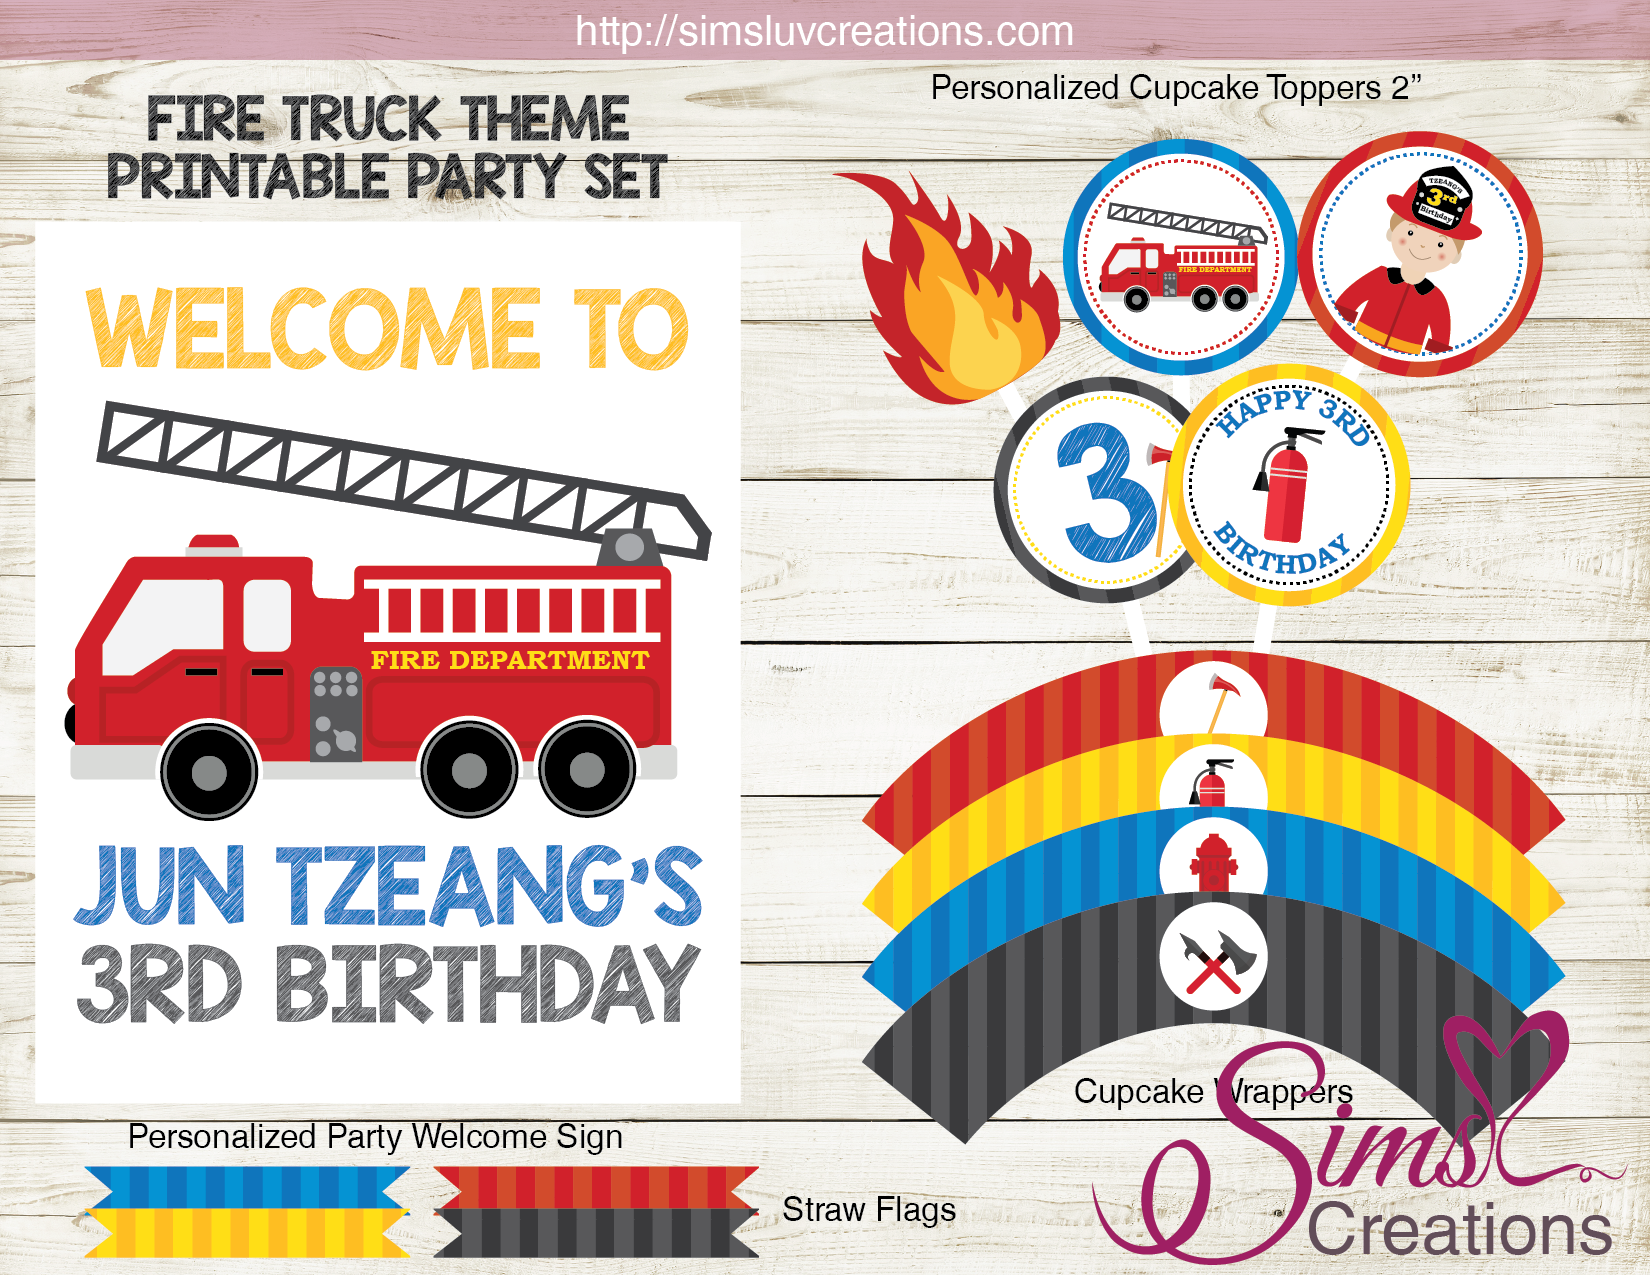 FIRE TRUCK PARTY PRINTABLES KIT | FIREFIGHTER BIRTHDAY PARTY SUPPLIES